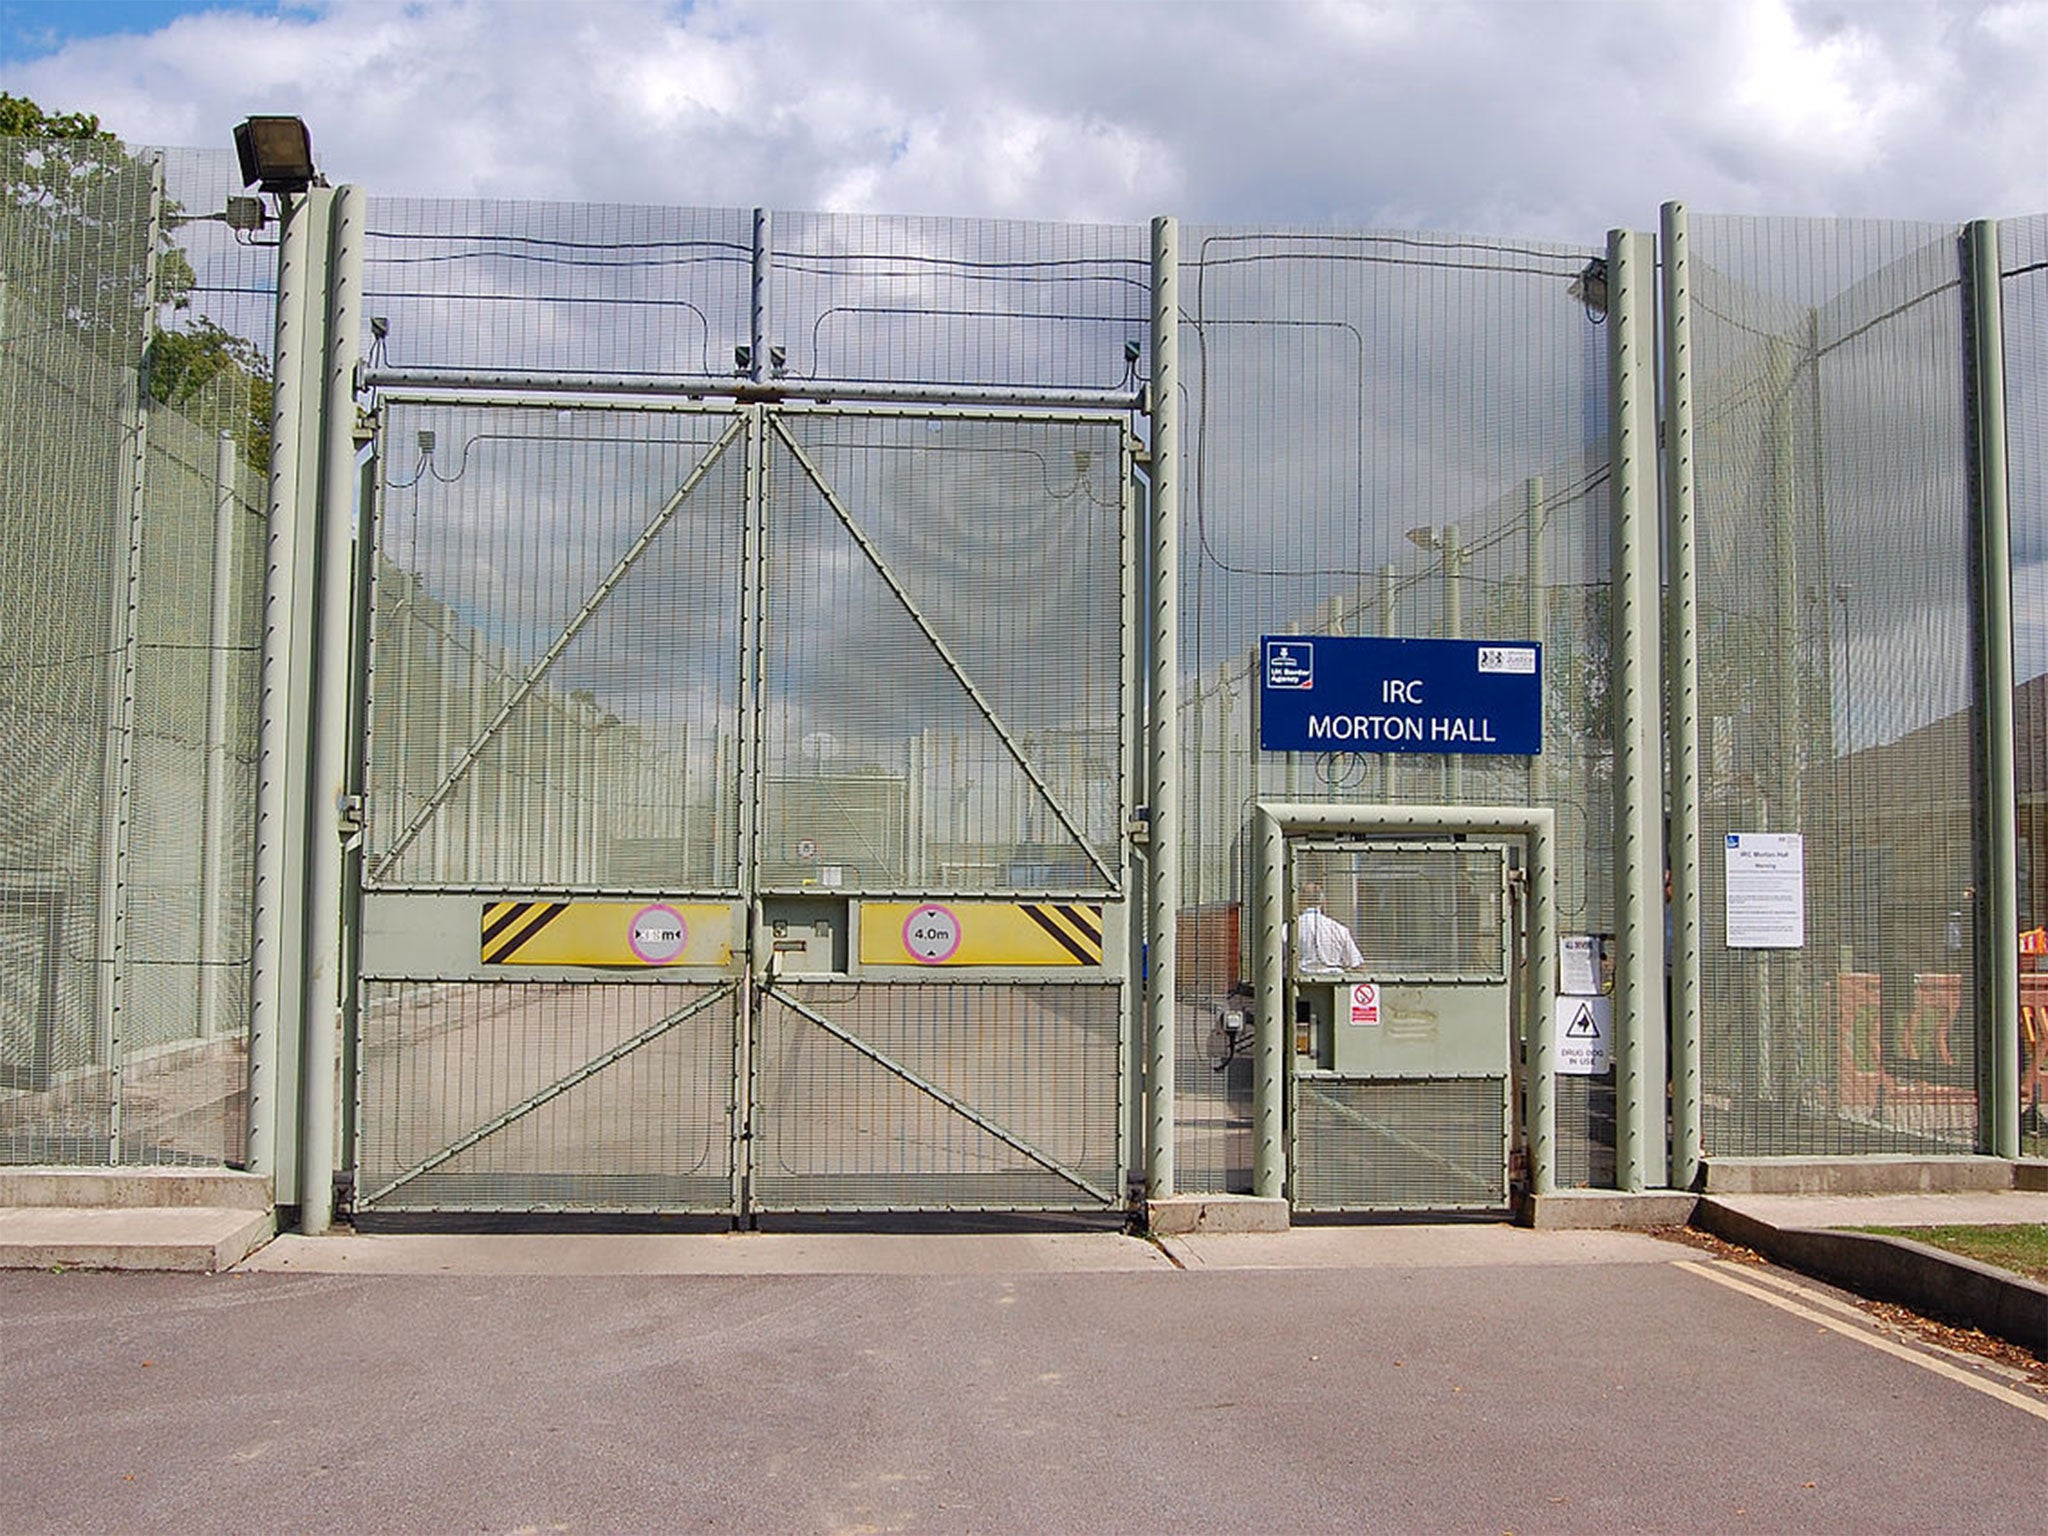 Surge in self-harm at immigration removal centre with dozens of 'vulnerable' detainees, finds report